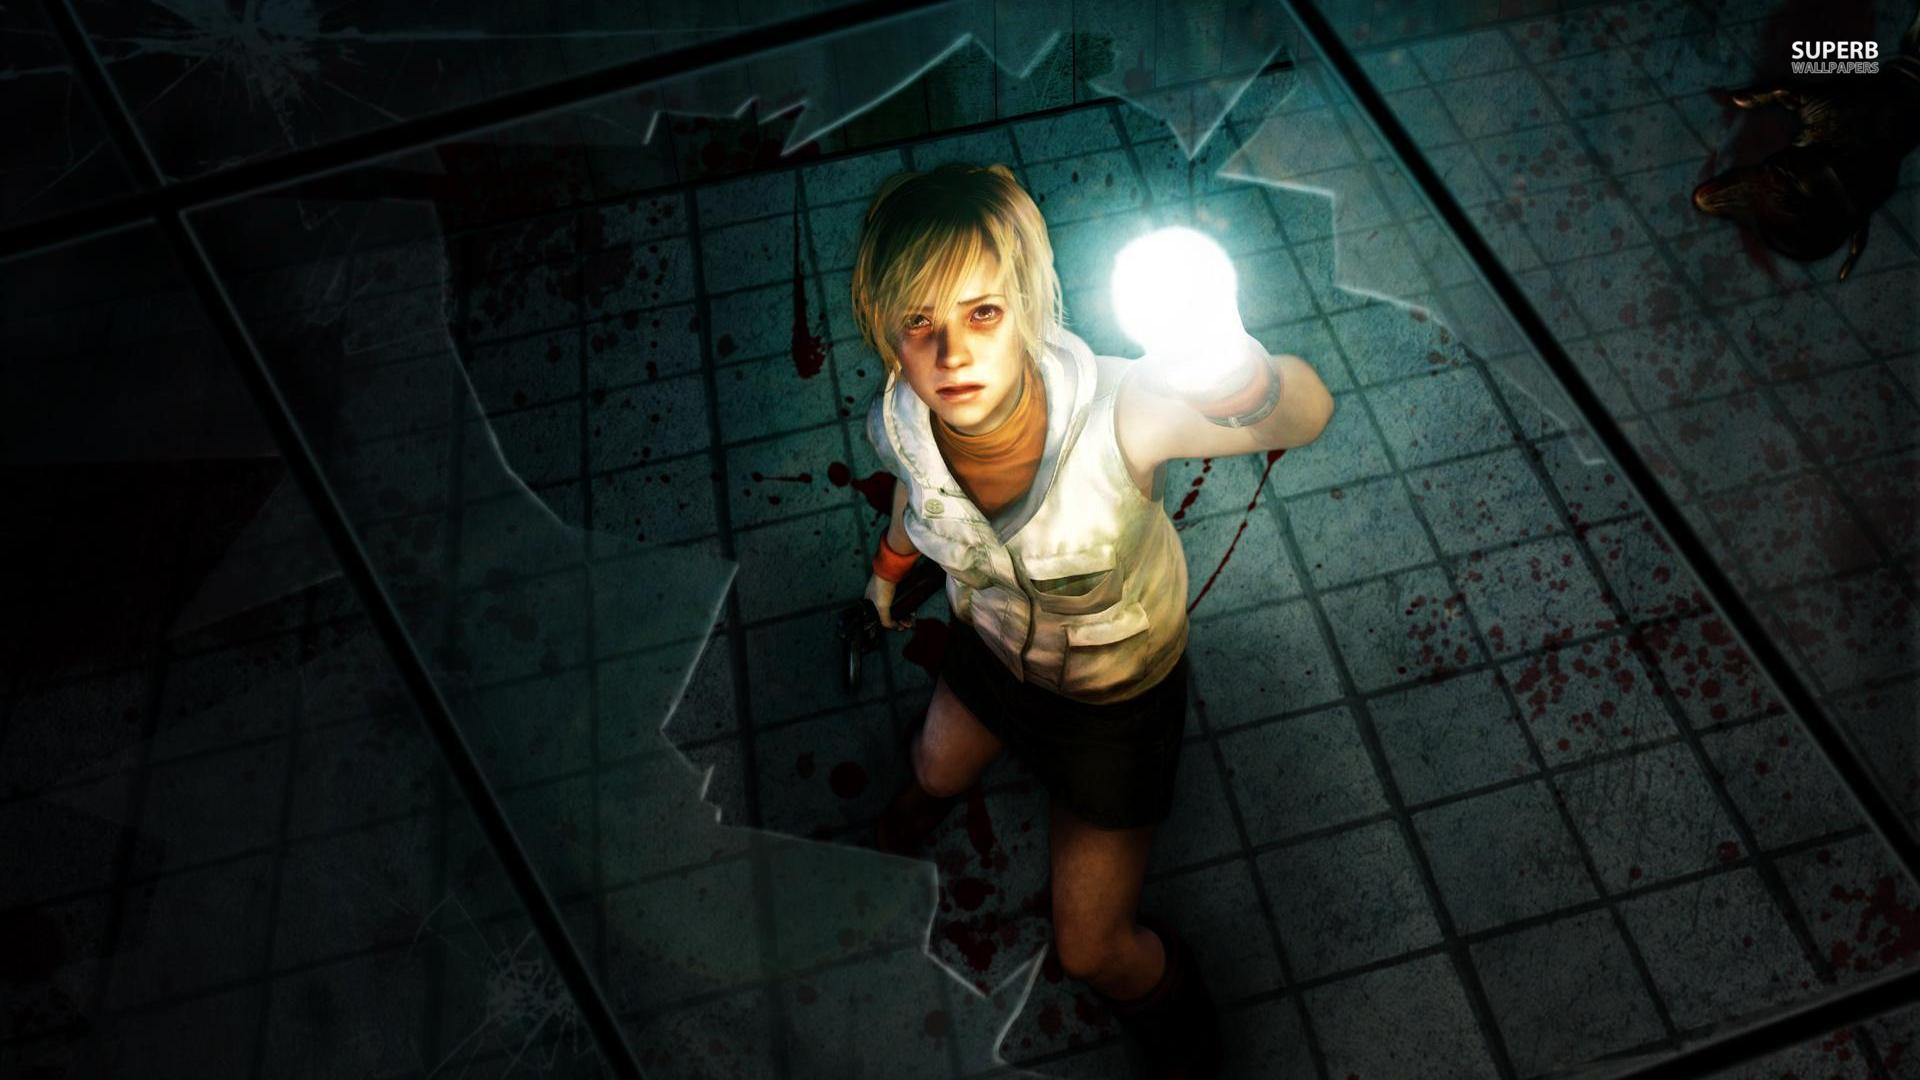 1920x1080 - Silent Hill HD Wallpapers 18